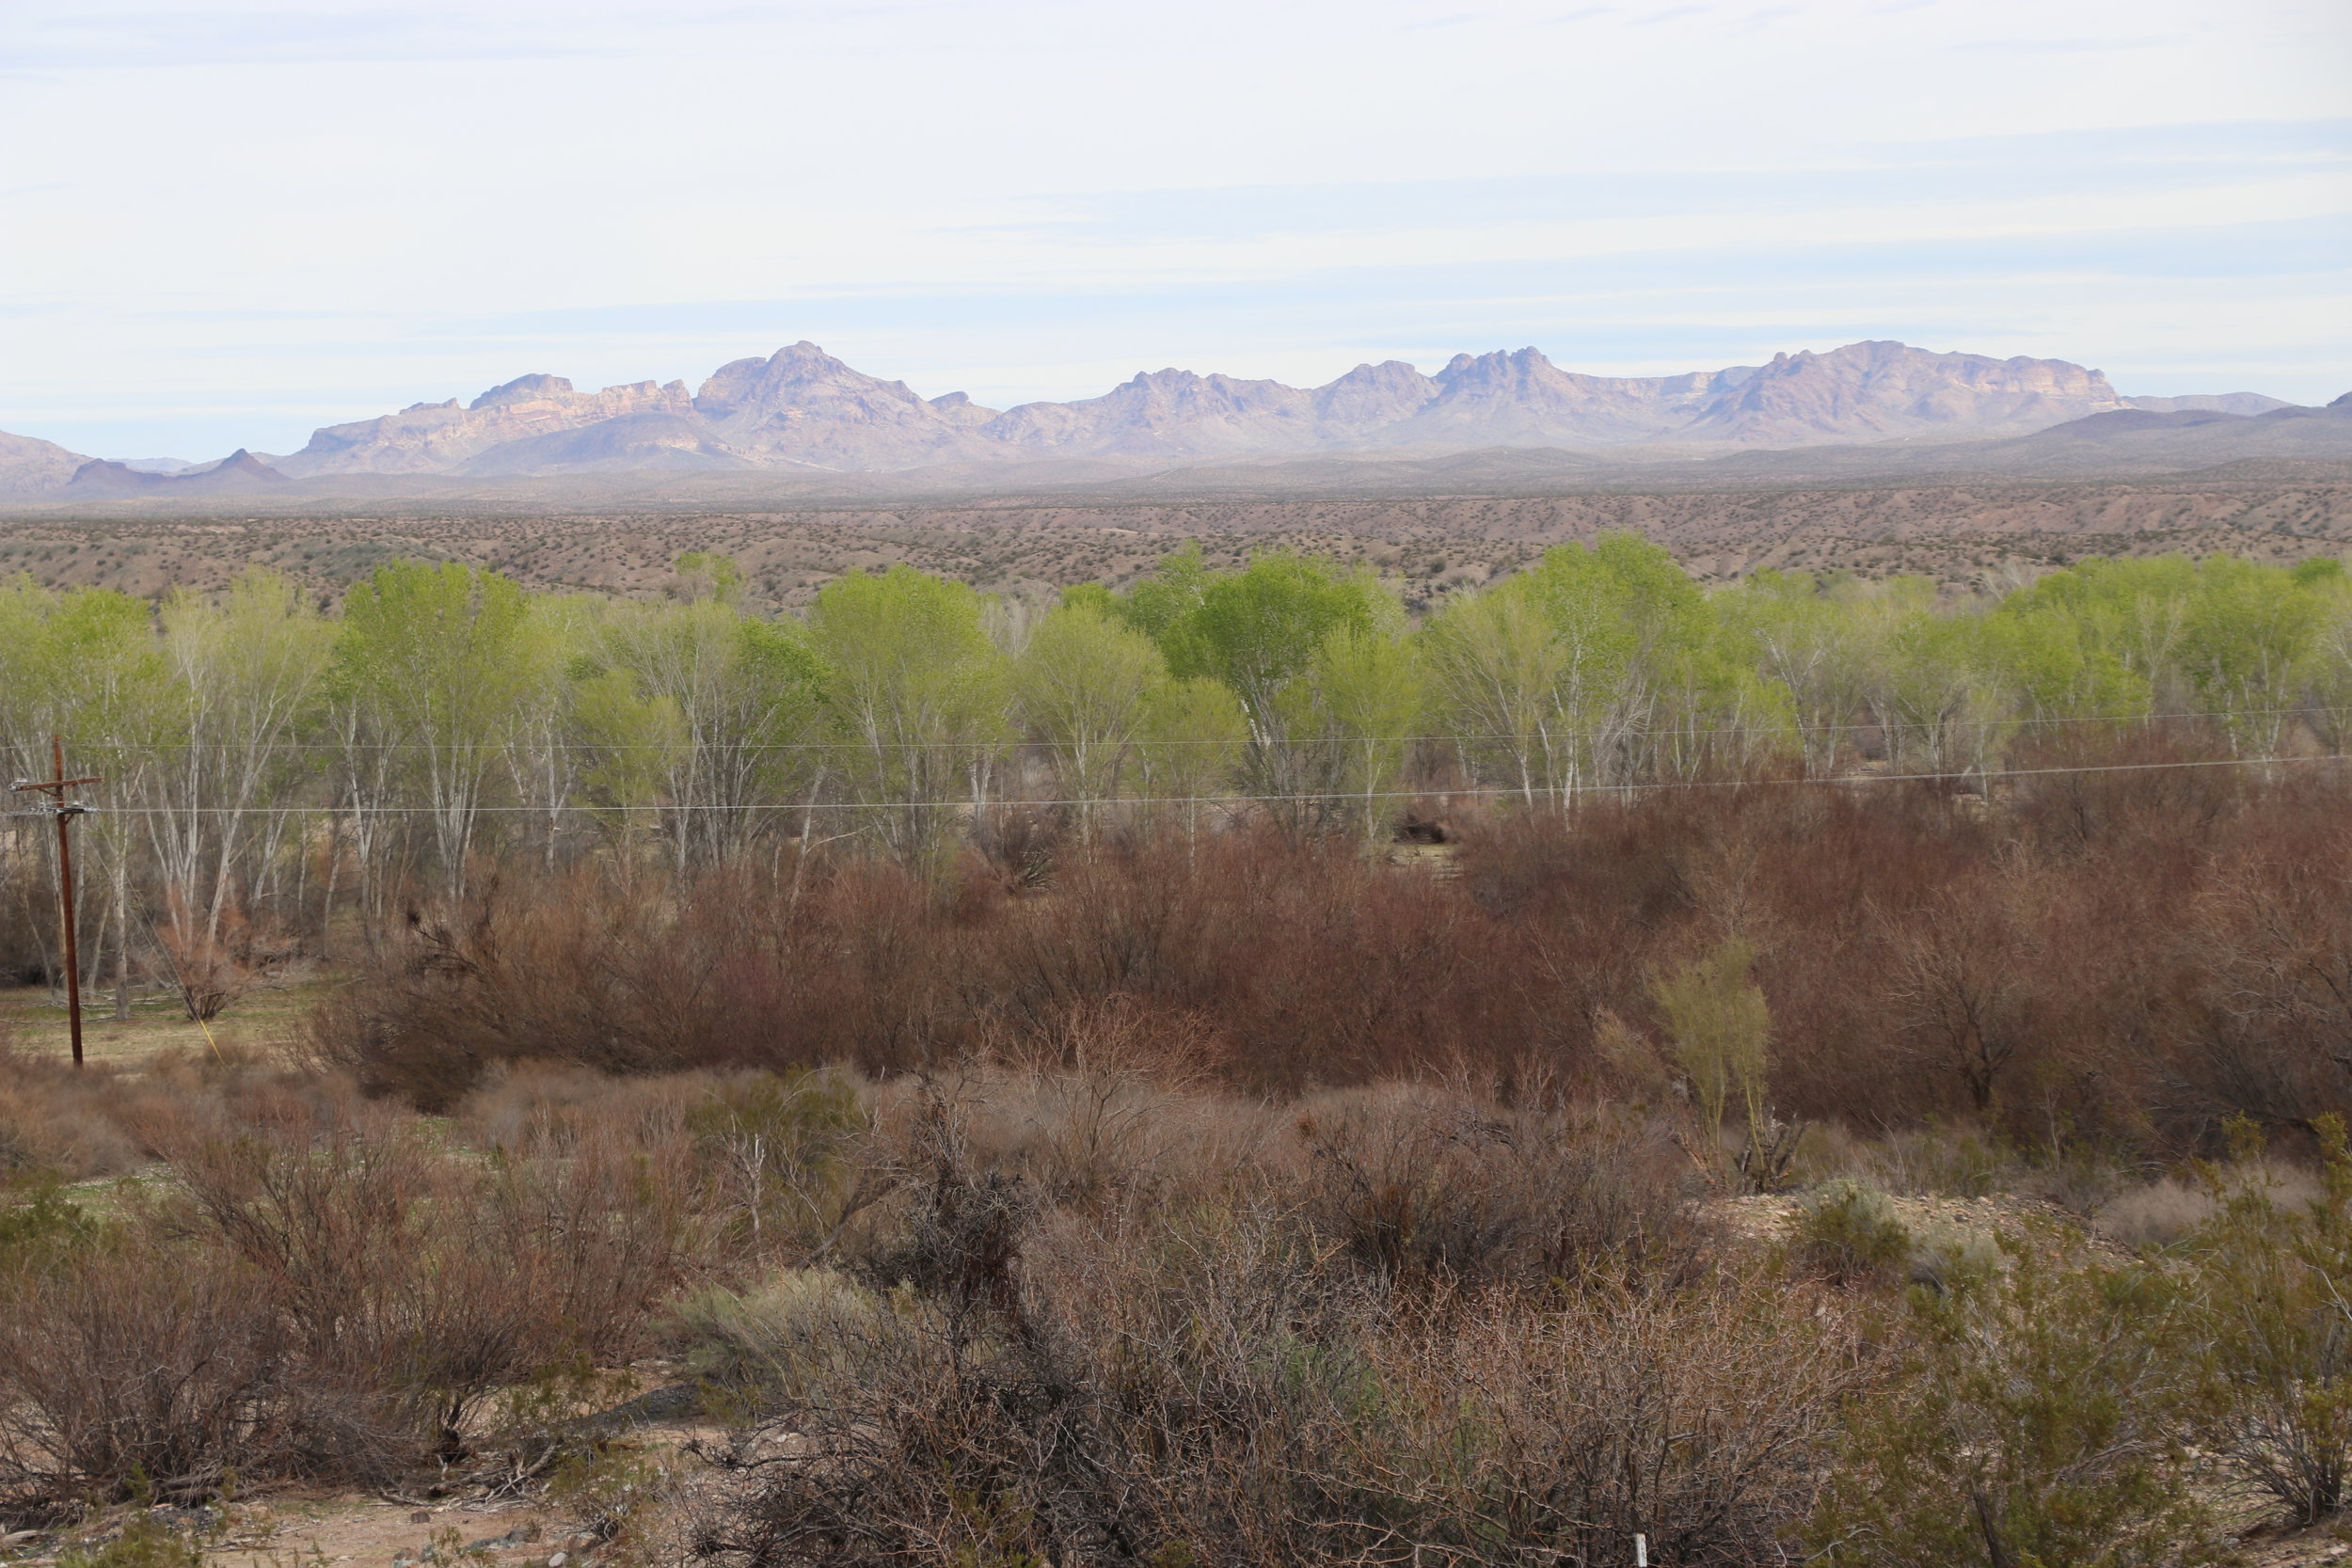 Looking north from Planet, across the Bill Williams River Valley.